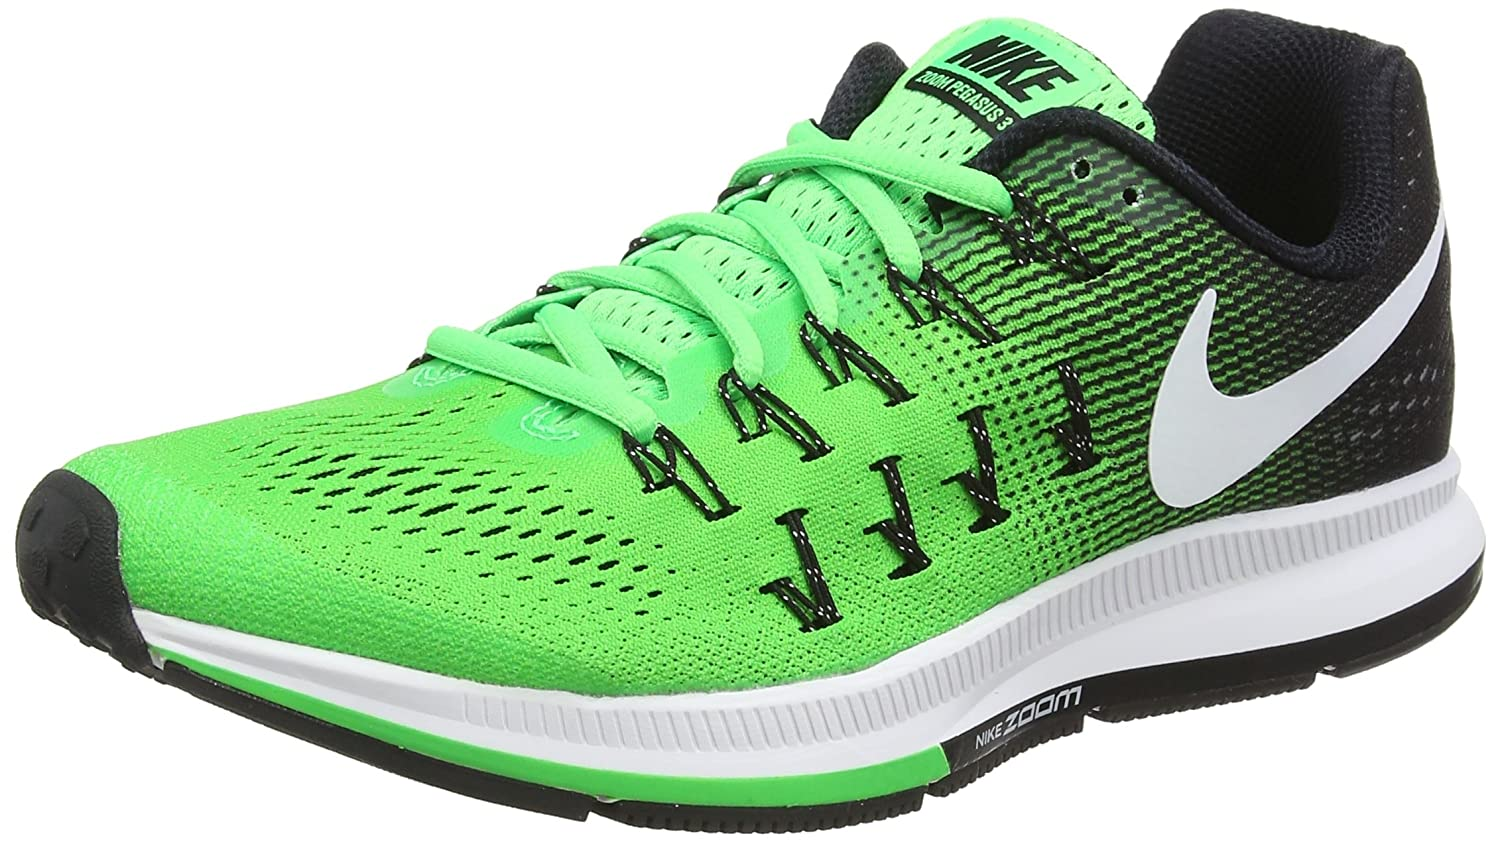 Nike Men's Air Zoom Pegasus 33 B01IP5XLCU 10 D(M) US|Rage Green White Black 301